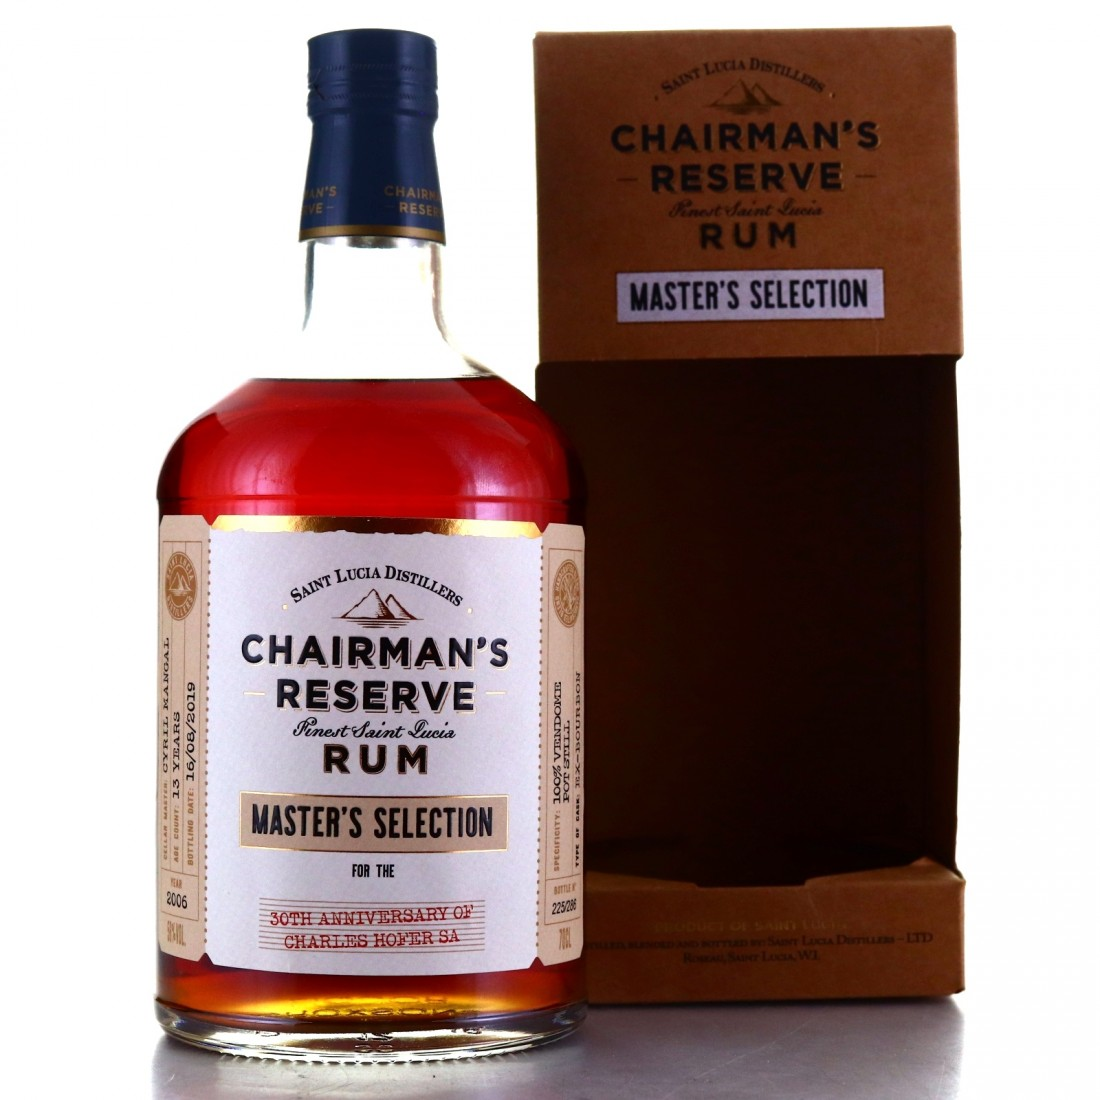 Chairman's Reserve 2006 Pot Still Single Cask 13 Year Old / 30th Anniversary Charles Hofer